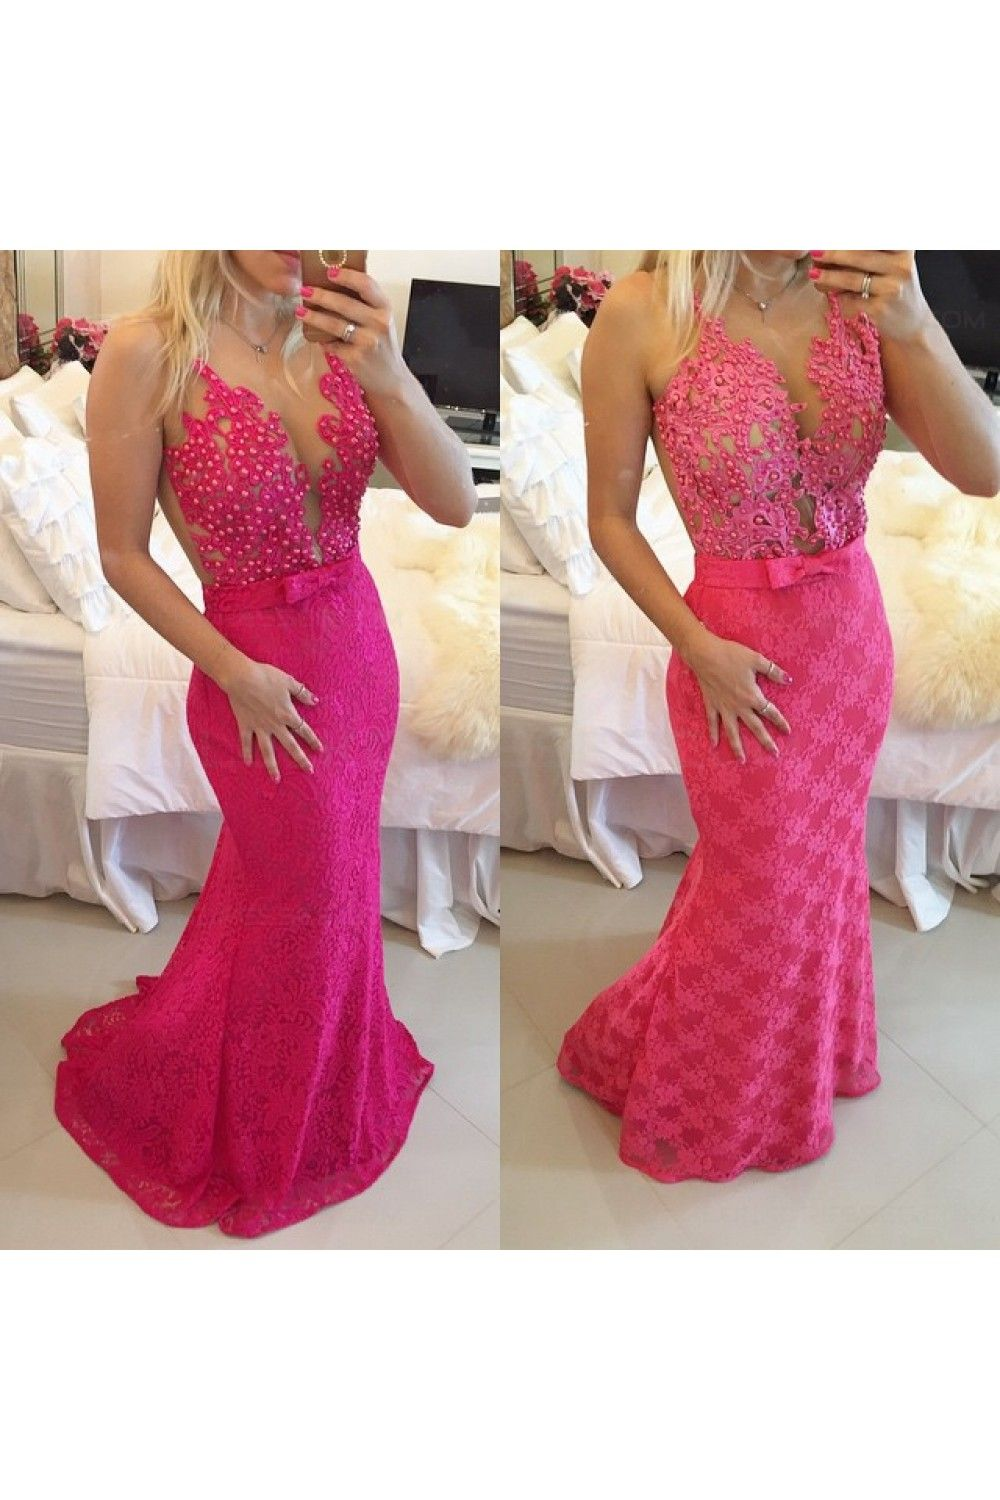 Trumpetmermaid lace long see through prom evening formal dresses